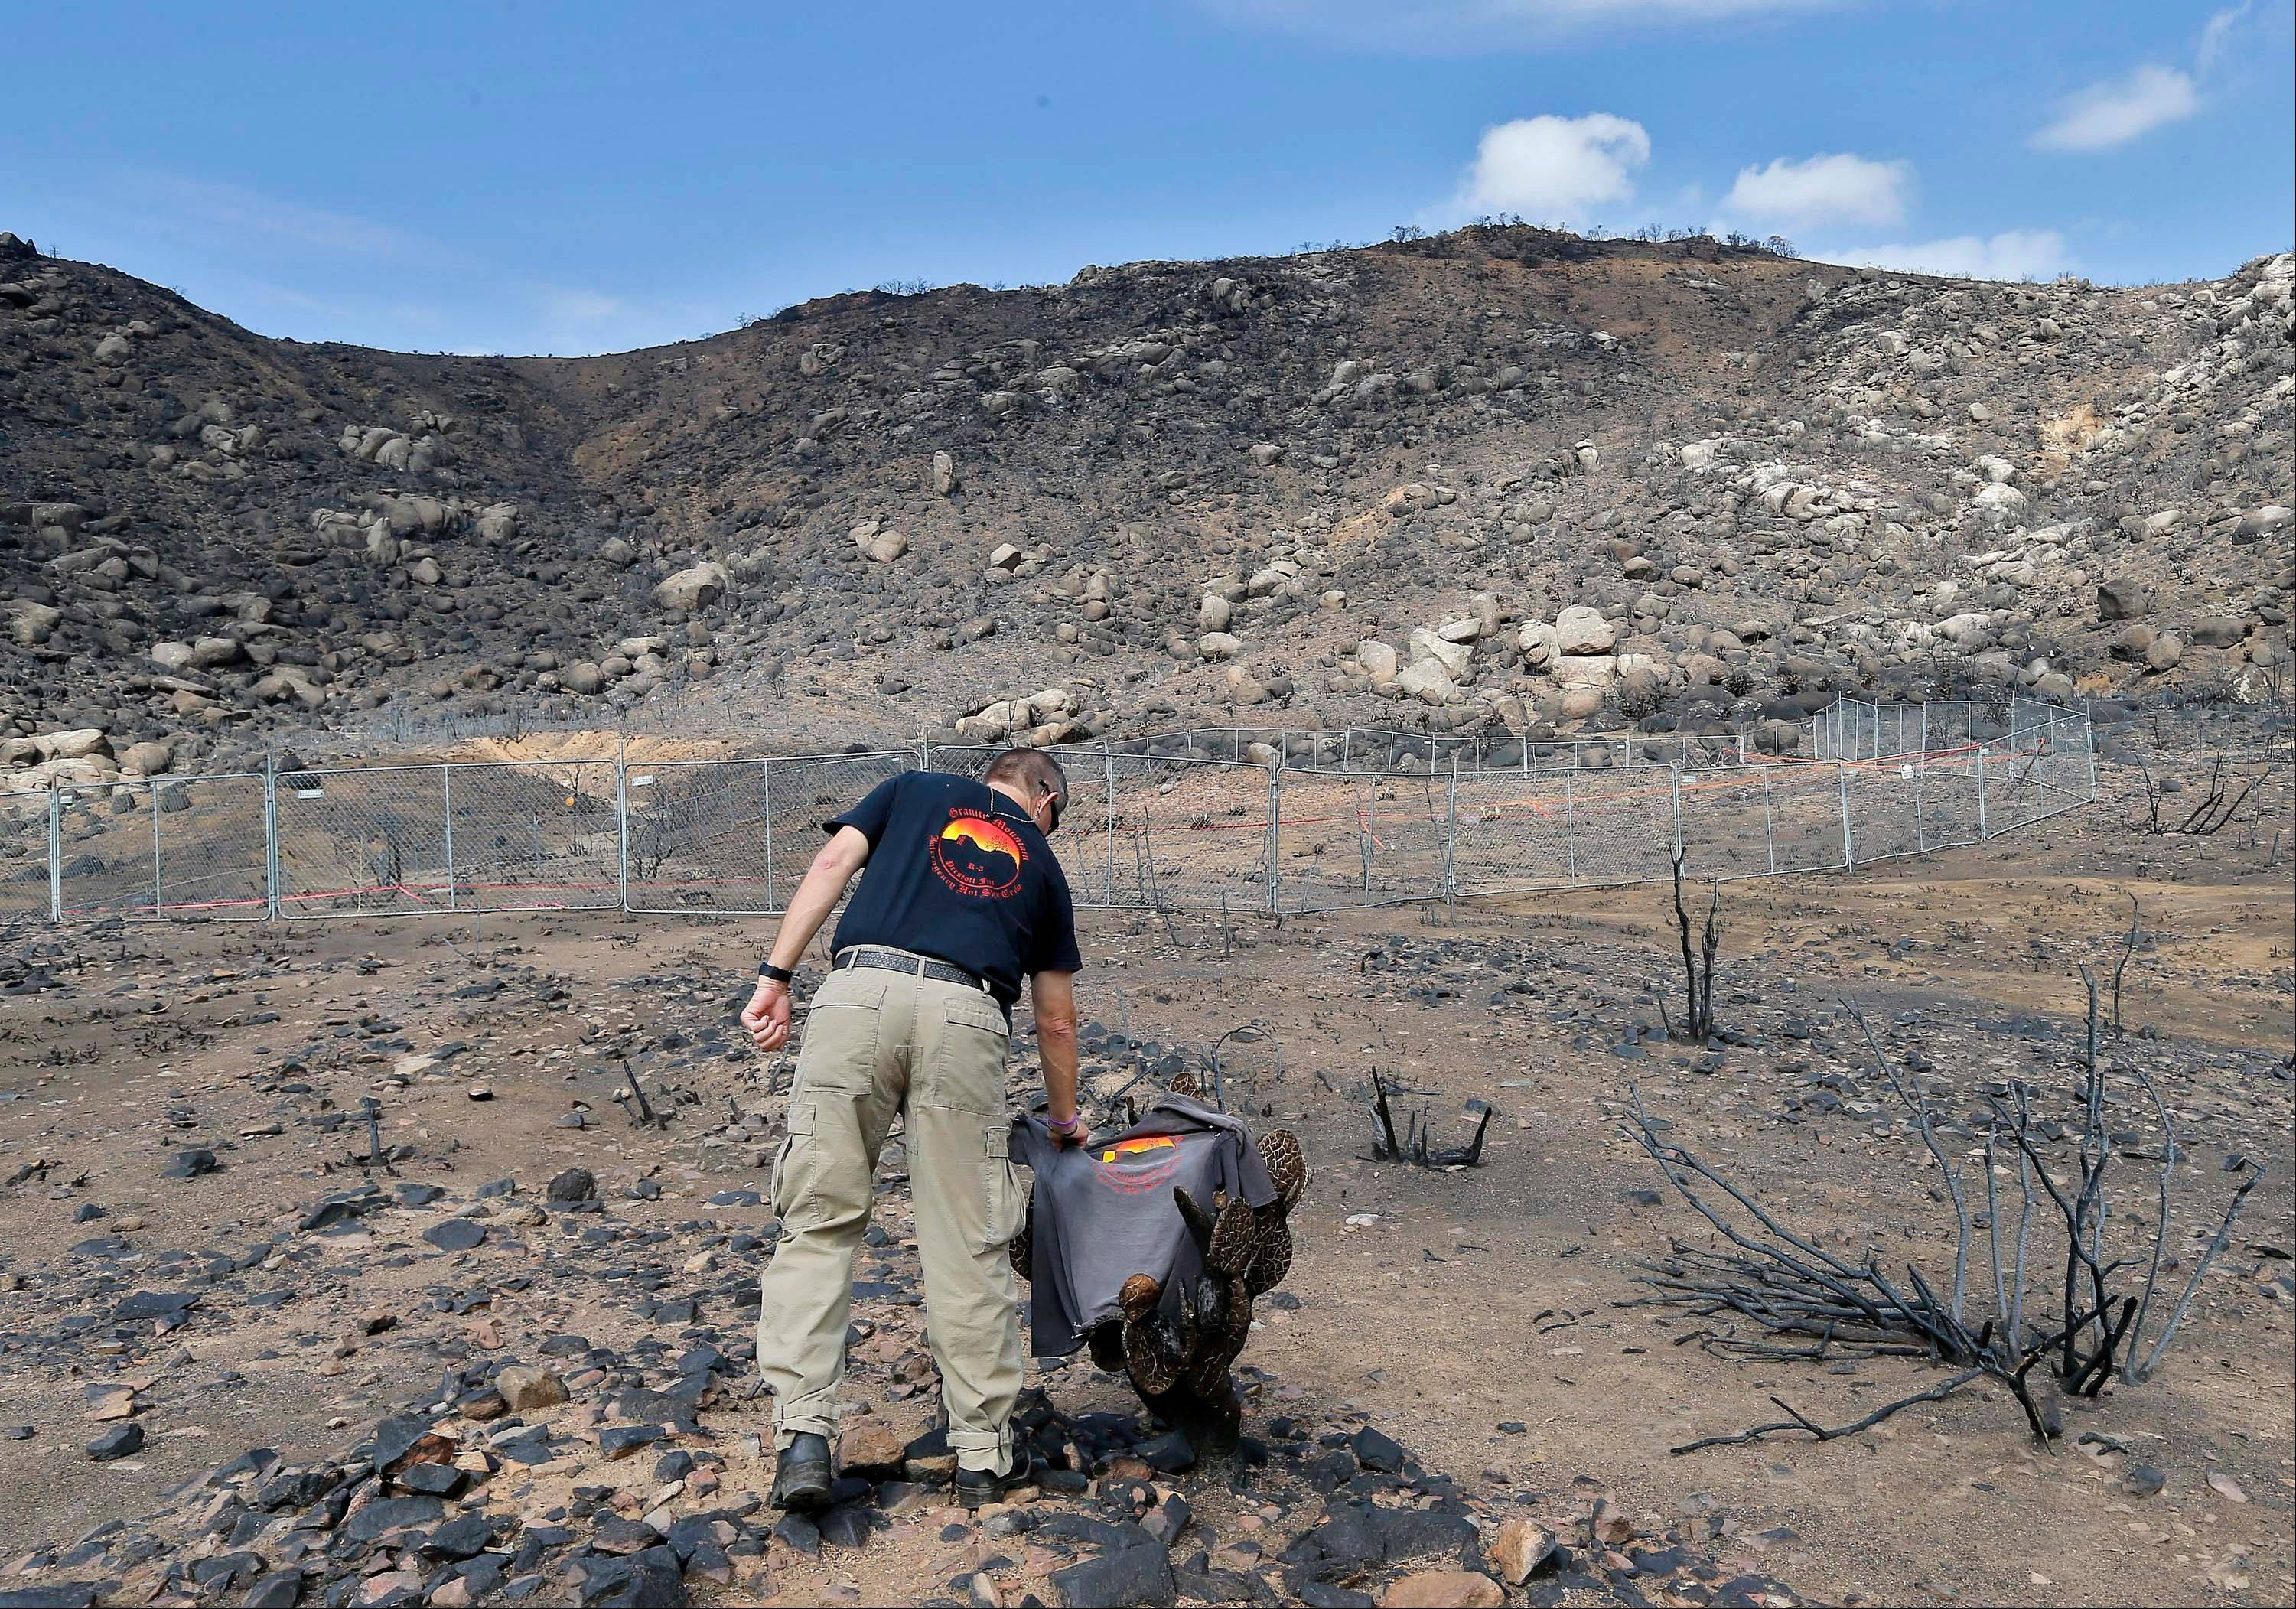 Prescott Wildland Division Chief Darrell Willis touches A Granite Mountain Hot Shots crew shirt draped over a burned cactus, Tuesday, July 23, in Yarnell, Ariz. Investigators released a report Saturday on the deaths of the 19 elite firefighters who became trapped by flames in a brush-choked canyon north of Phoenix.